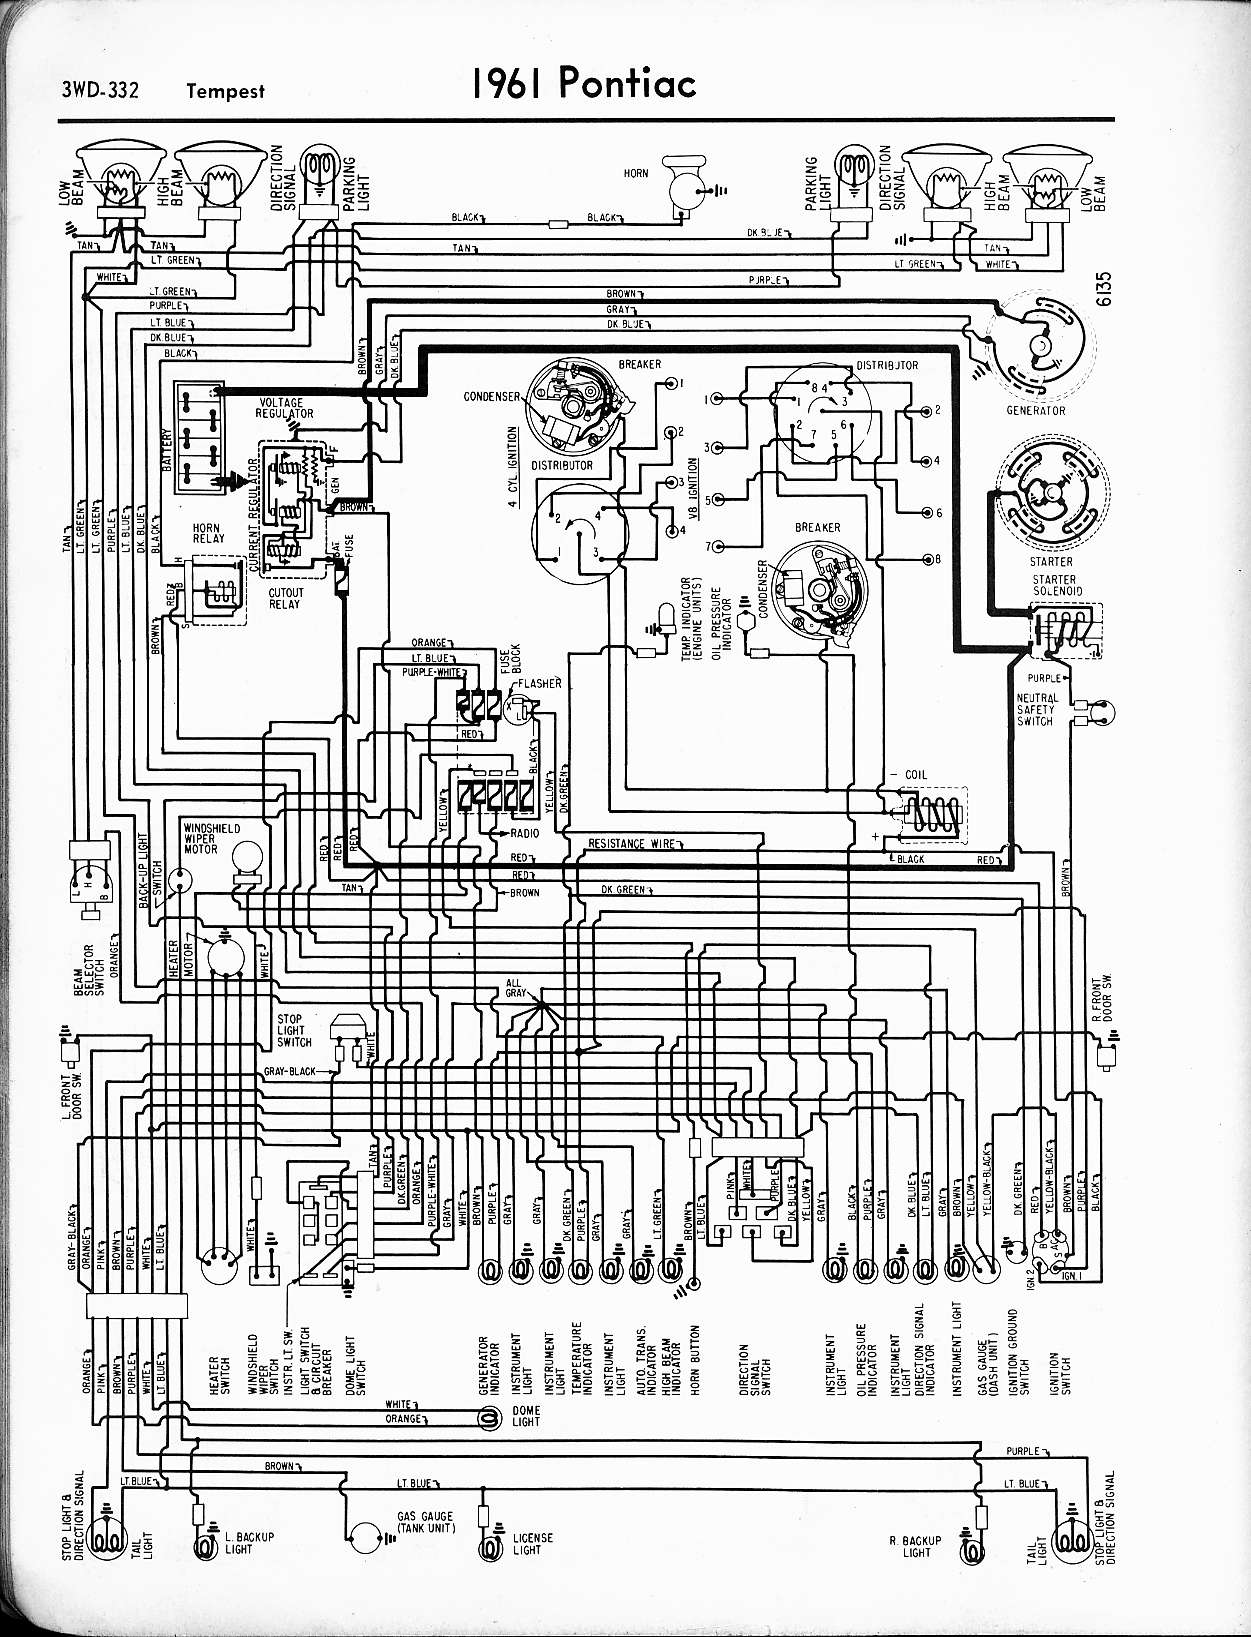 diagram] amplifier wiring diagram 2006 pontiac gto full version hd quality pontiac  gto - roomyreaction.pumabaskets.fr  roomyreaction.pumabaskets.fr